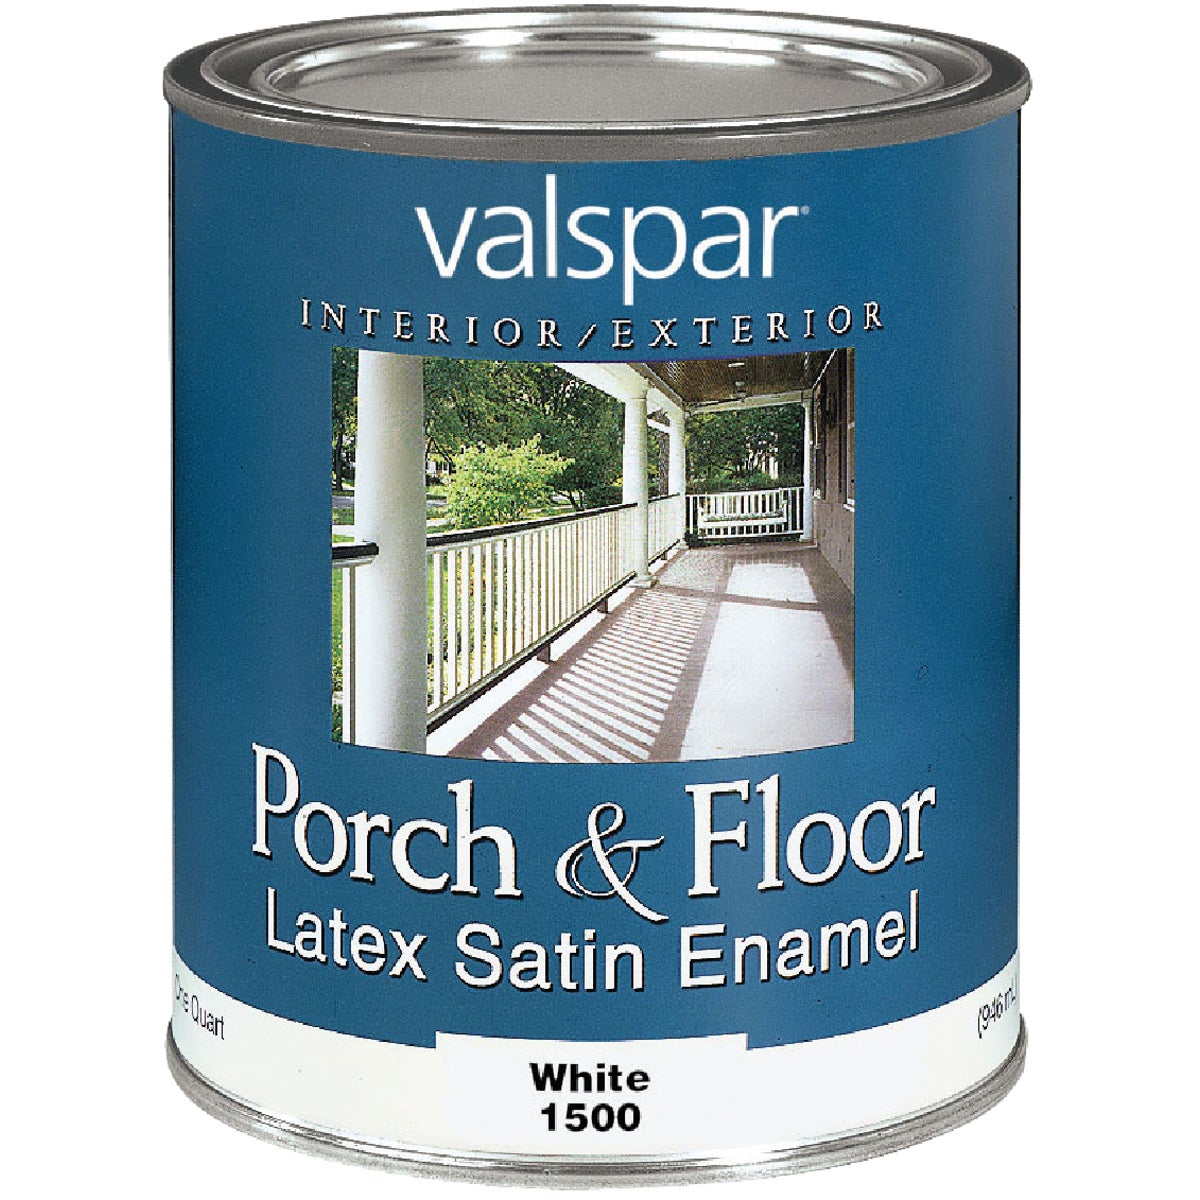 WHITE LTX FLOOR ENAMEL - 027.0001500.005 by Valspar Corp